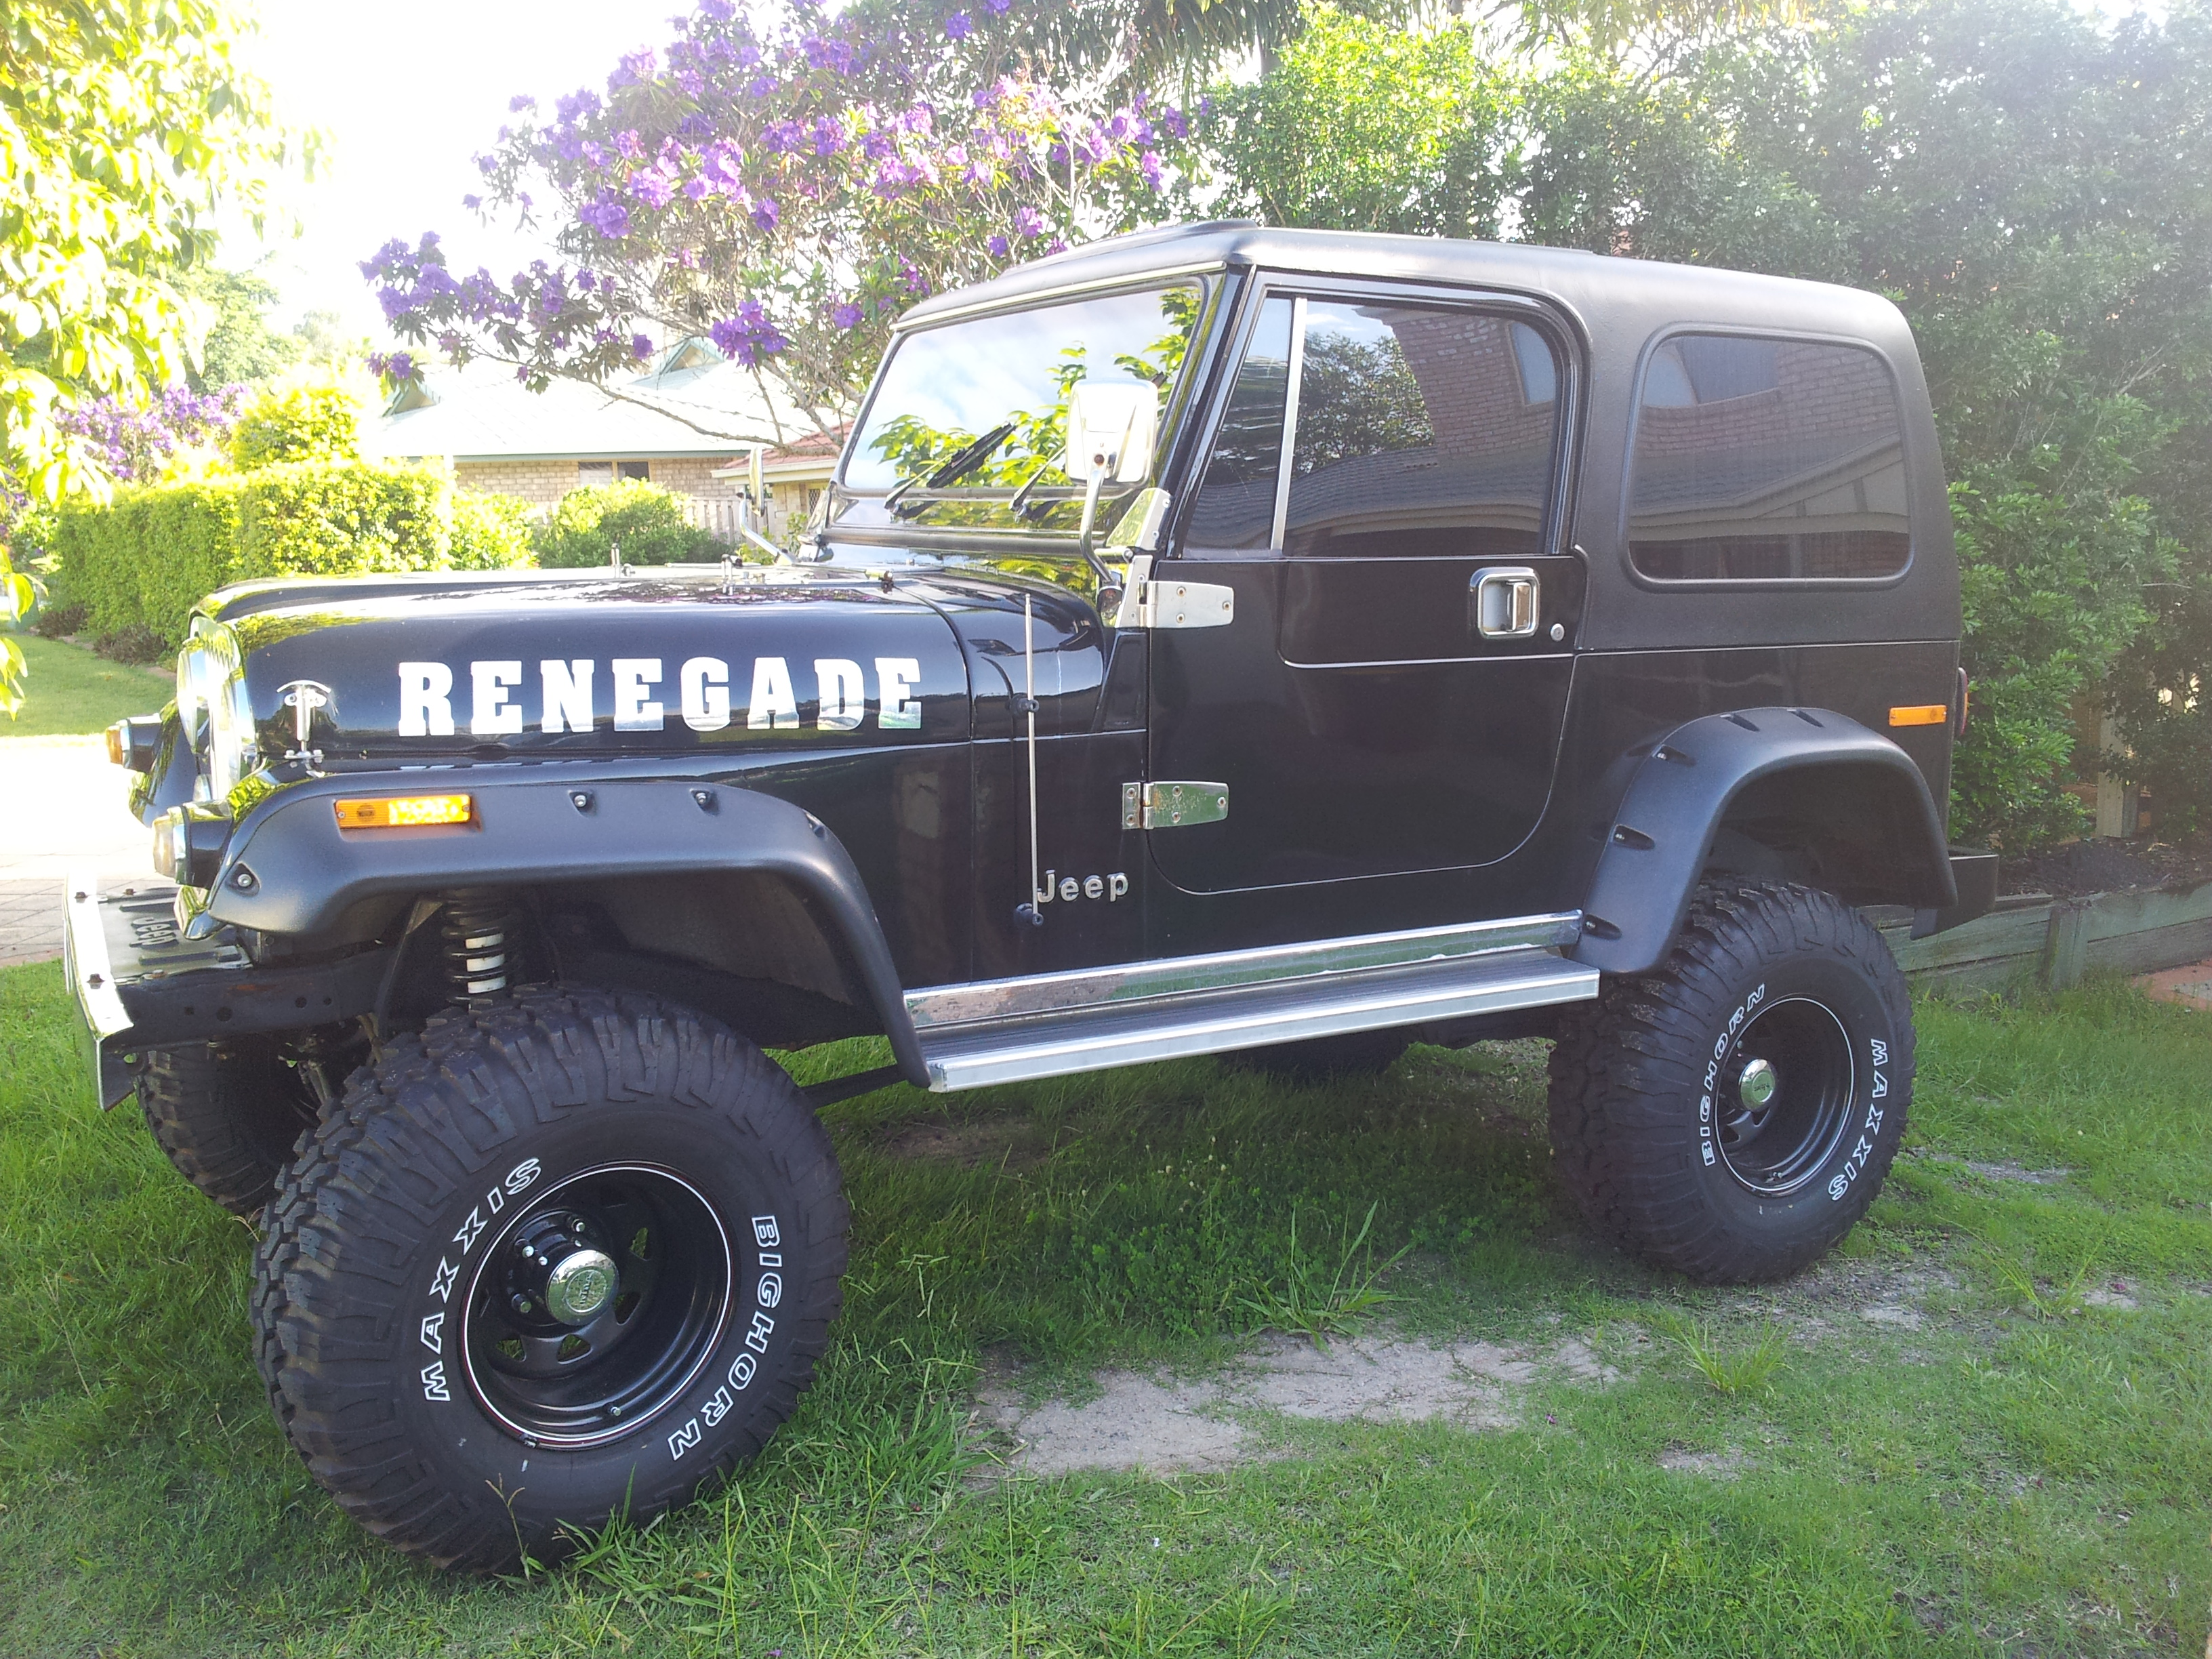 1980 Jeep Cj7 Renegade  4x4